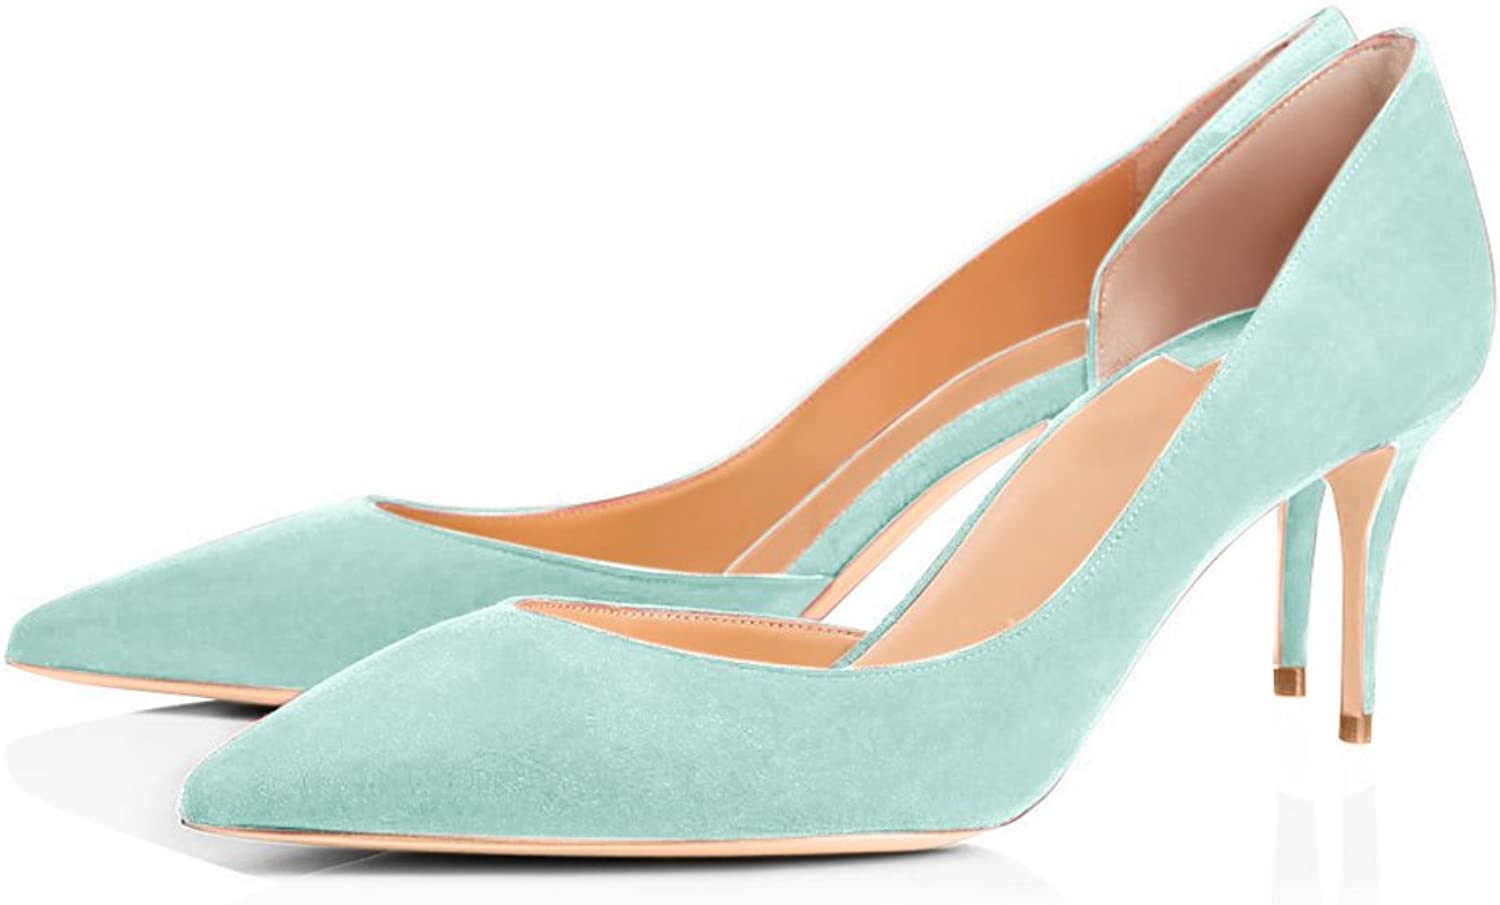 UMEXI Pointed Toe Kittent Heel D-Orsay Sandals Fashion Pumps Wedding Dress shoes for Women